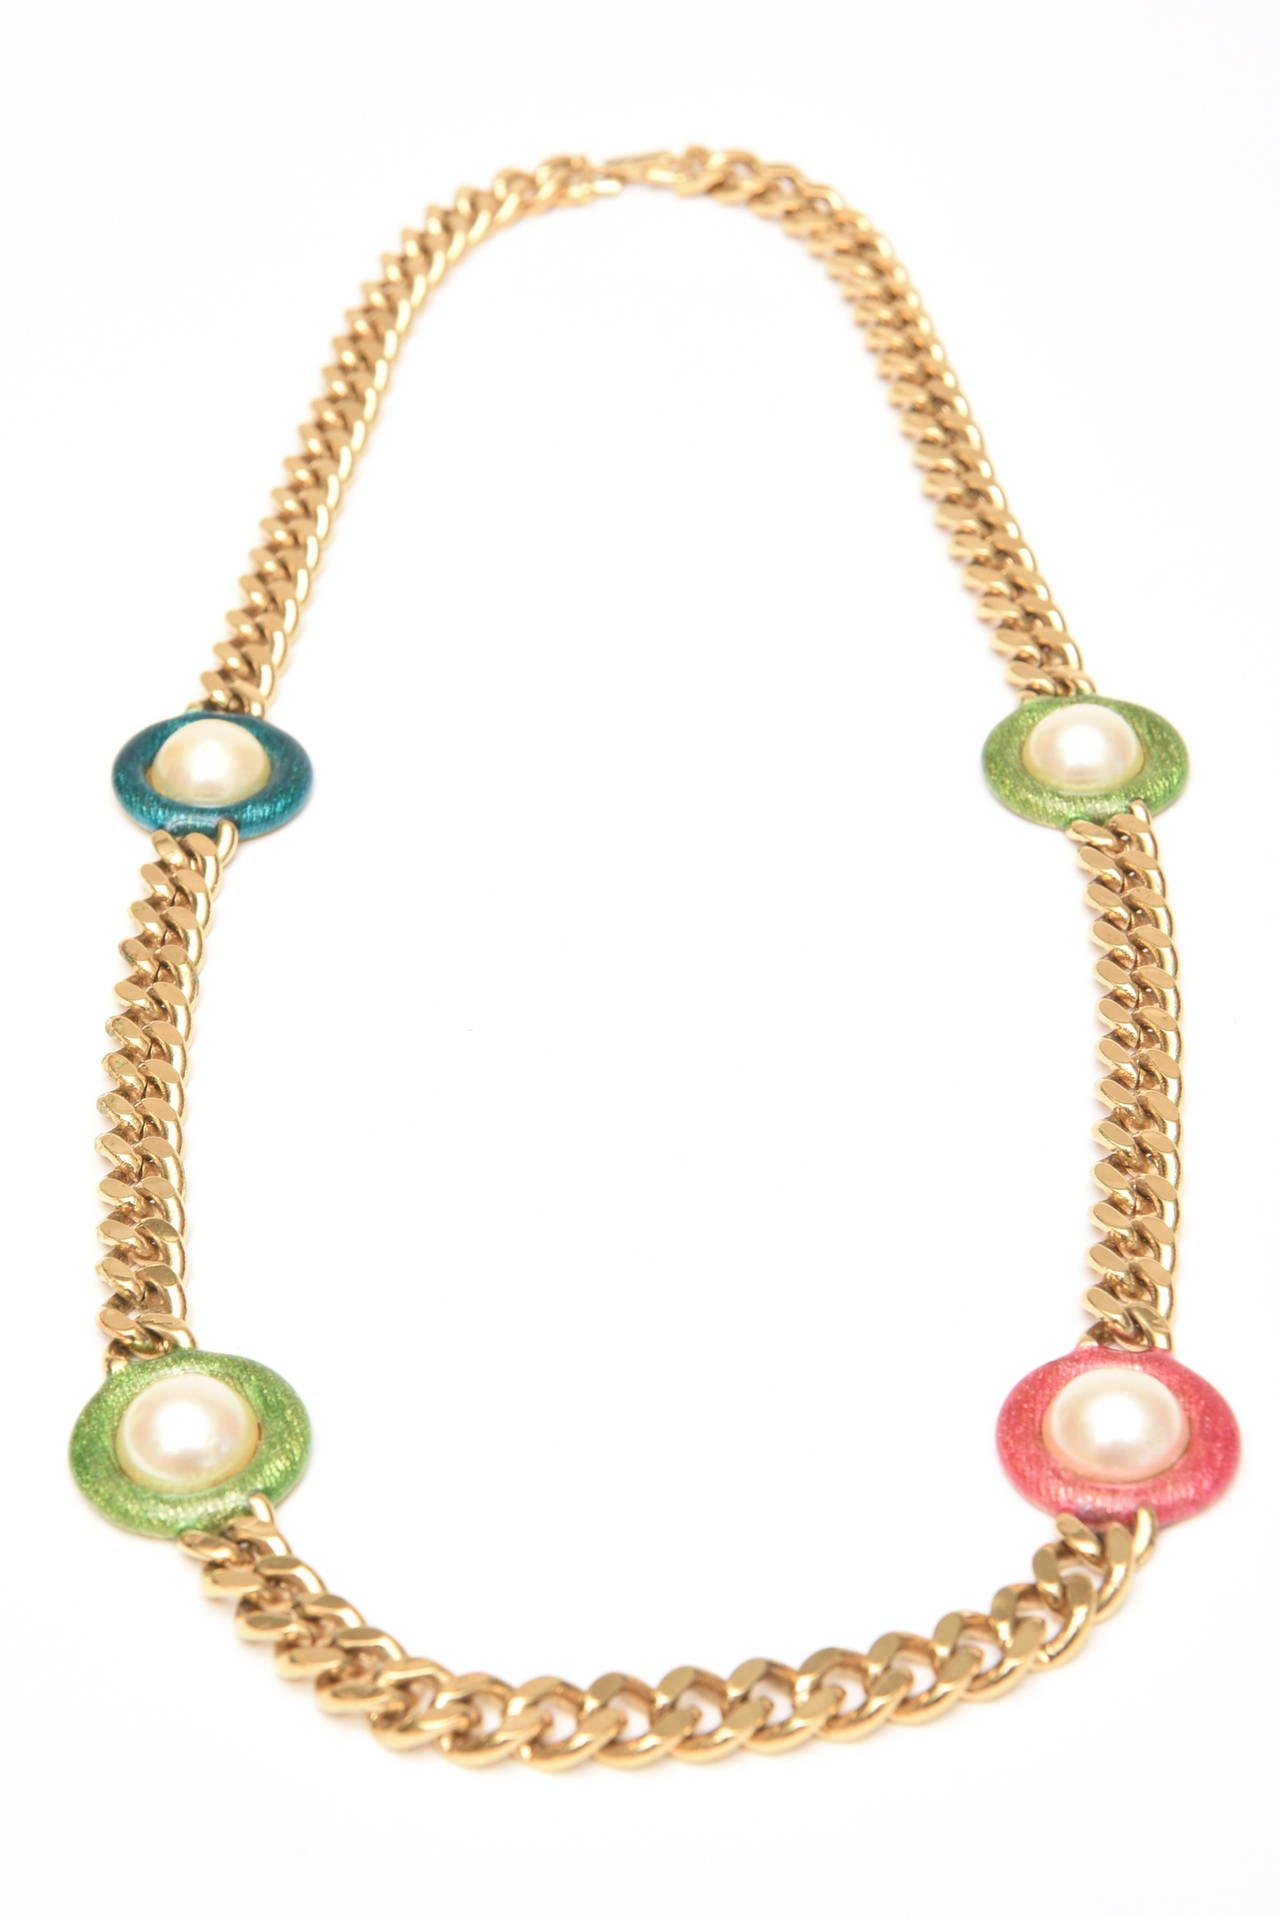 Women's Guy Laroche Gold,Tone Chain Link Strand Necklace with Enamel and Faux Pearl SALE For Sale